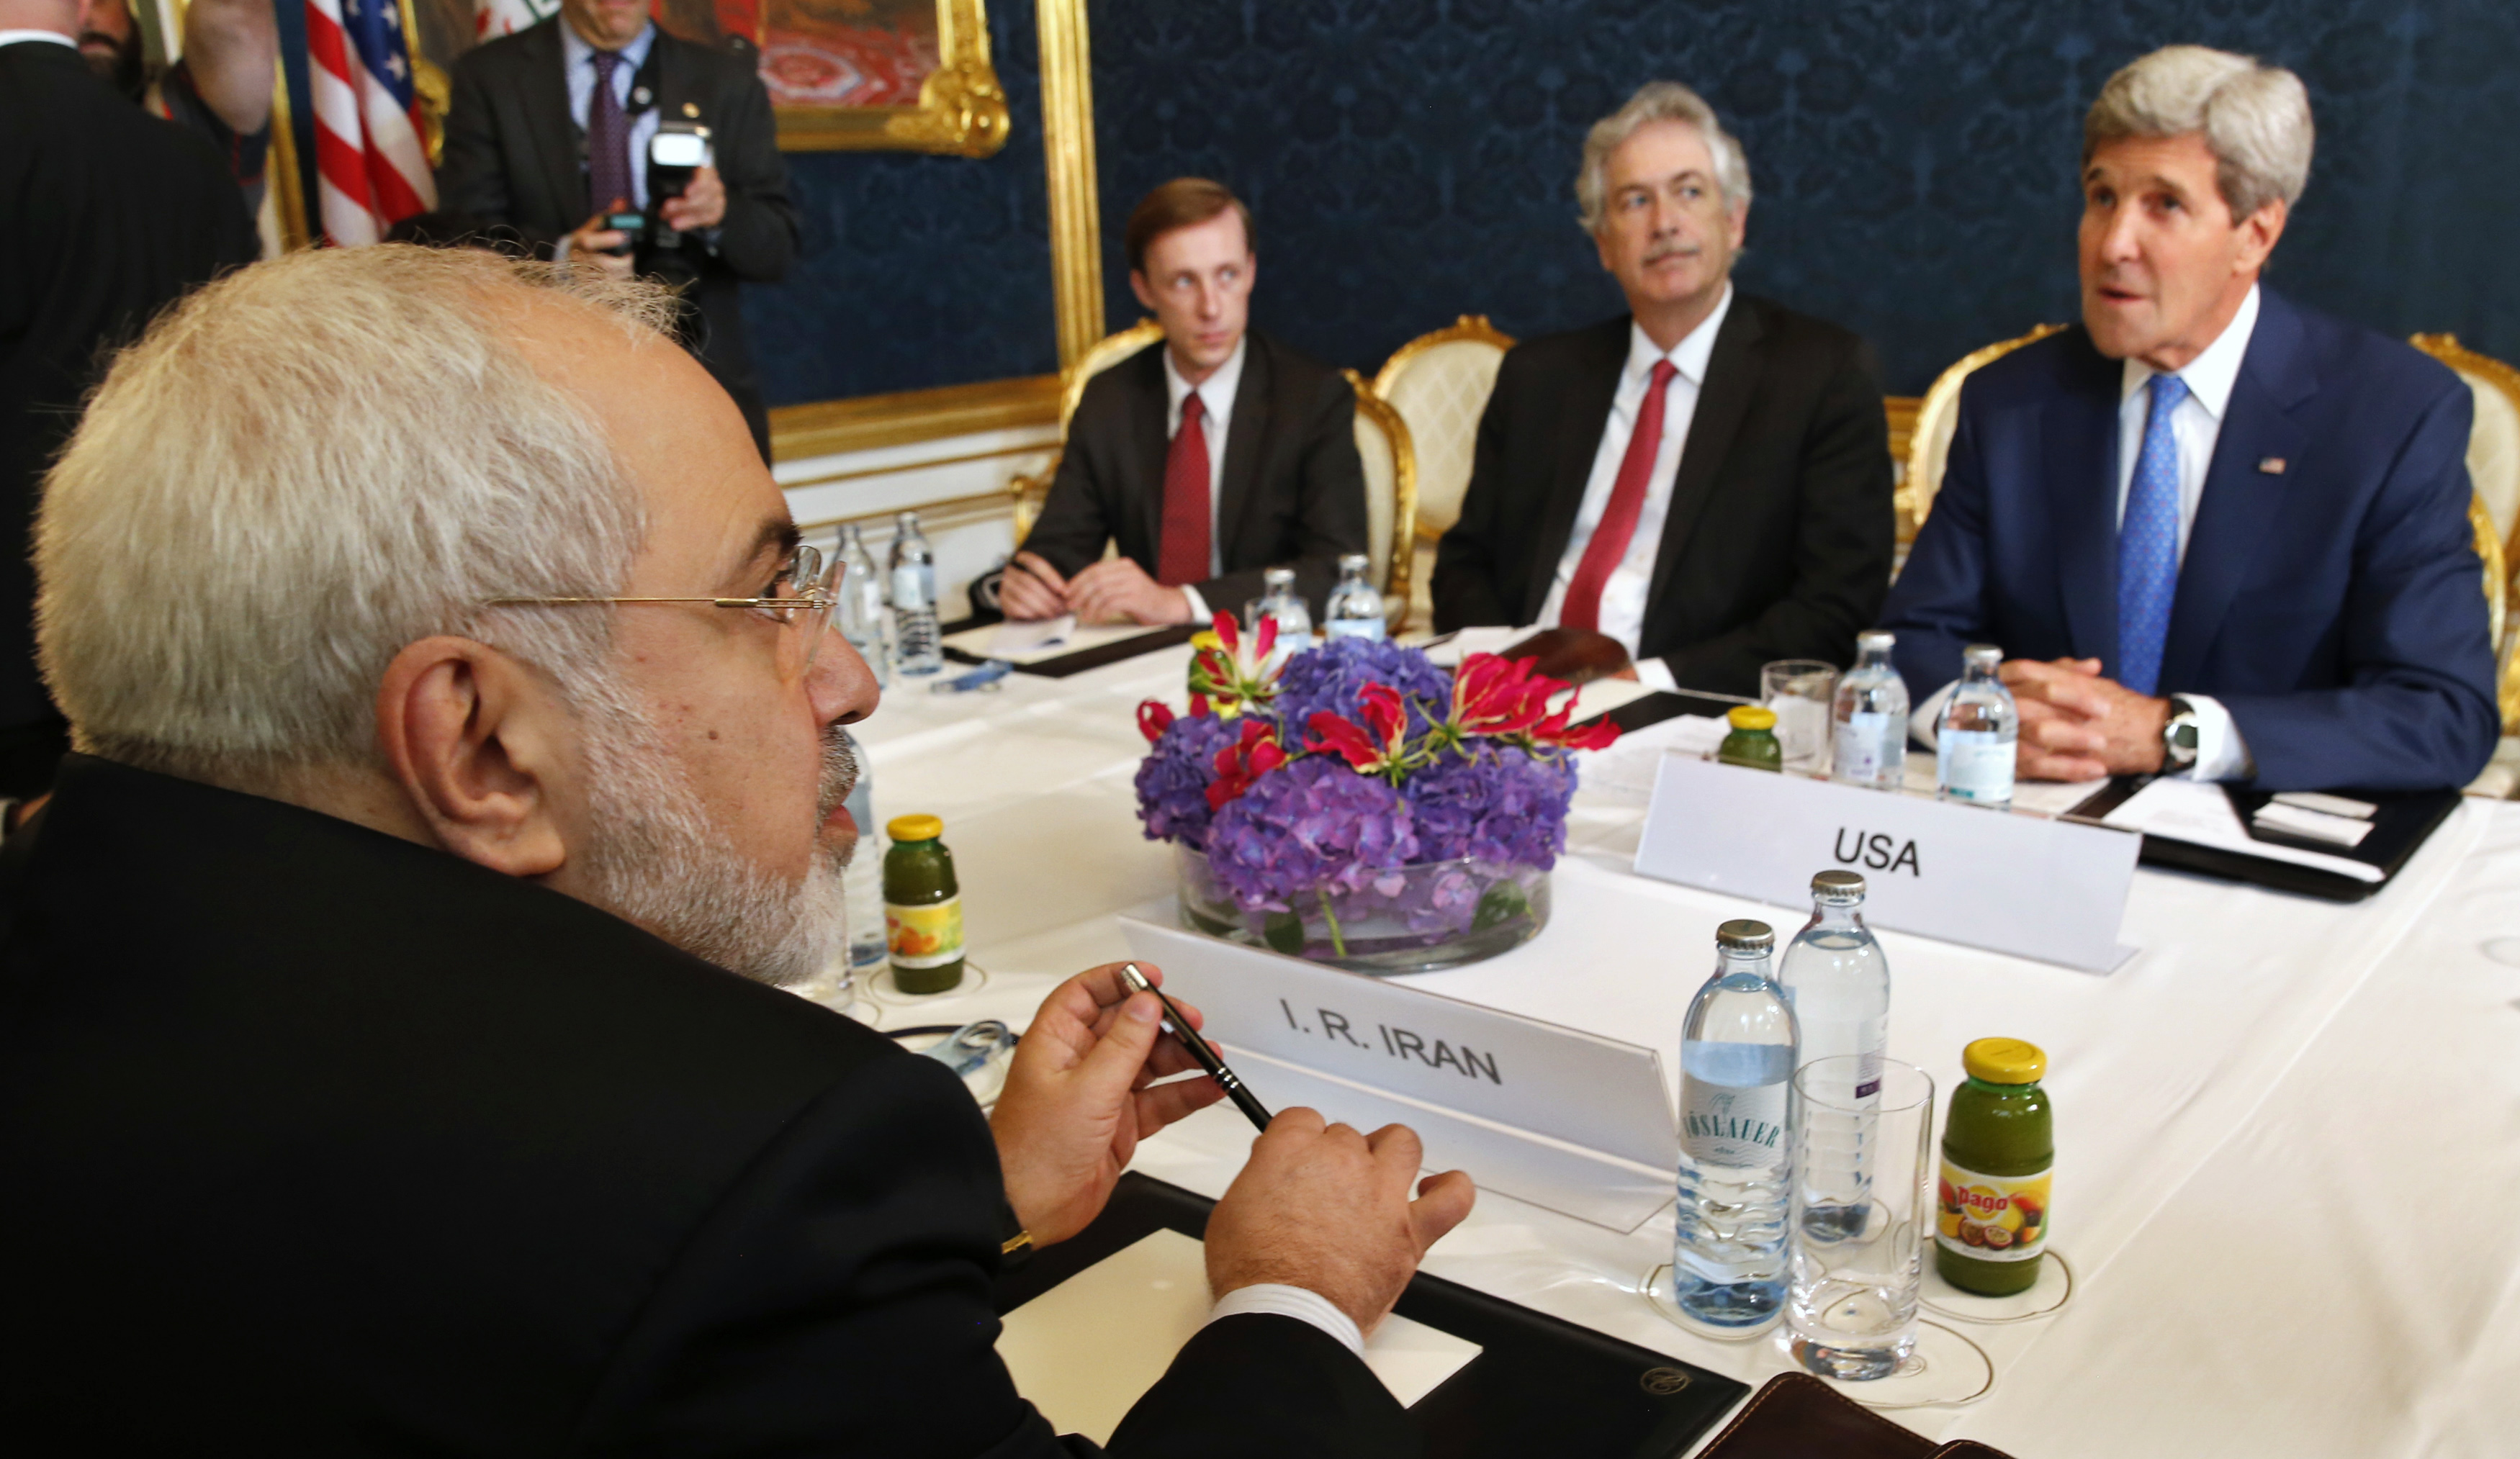 Iran's Foreign Minister Javad Zarif (L) holds a bilateral meeting with U.S. Secretary of State John Kerry (R) on the second straight day of talks over Tehran's nuclear program in Vienna, July 14, 2014.